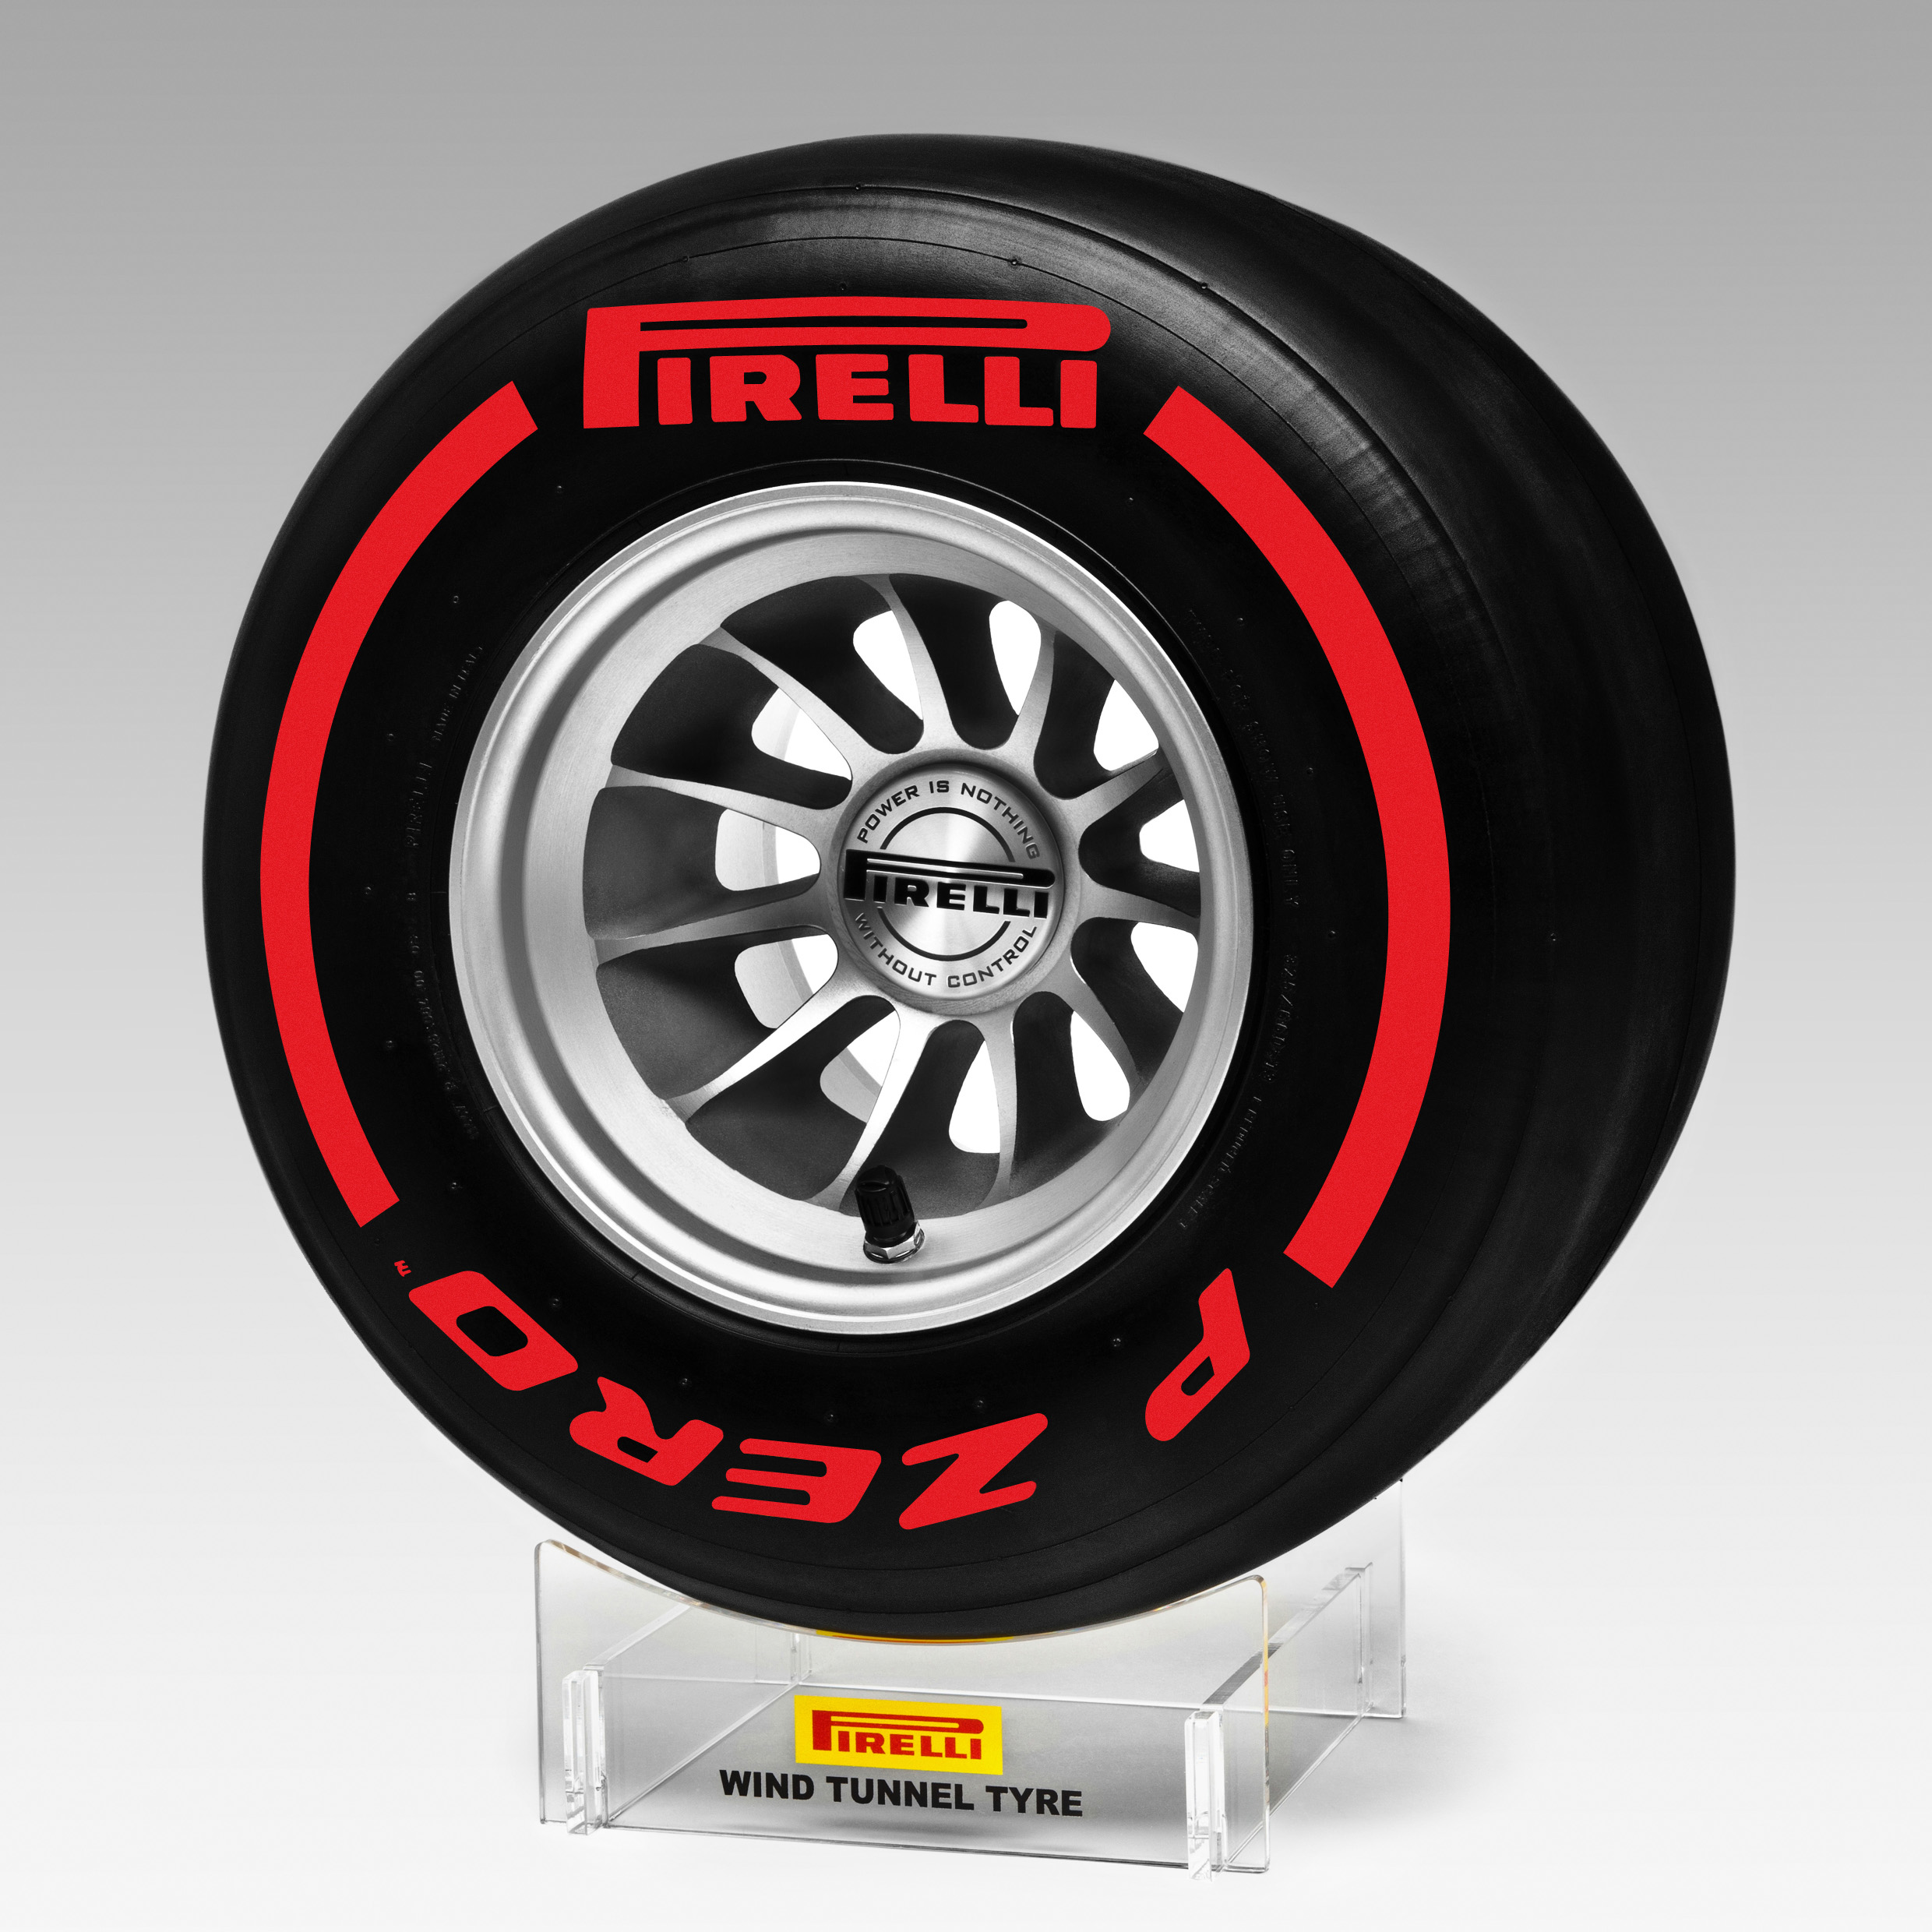 Pirelli Super Soft Replica Wind Tunnel Tyre 1:2 Scale